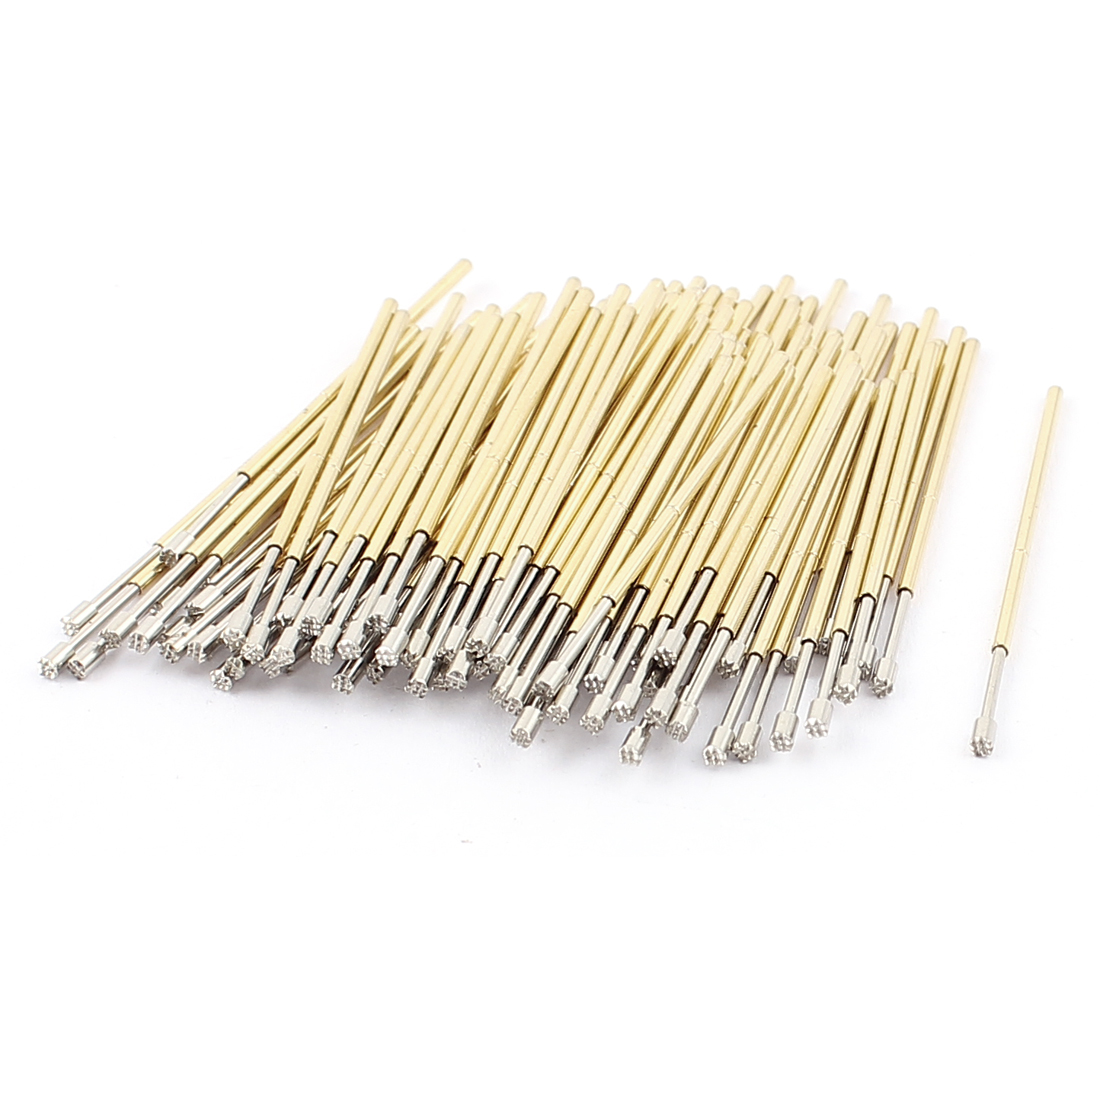 100Pcs P75H 1.3mm Dia Serrated Crown Tip Spring Test Probes Testing Contact Pins 33mm Length